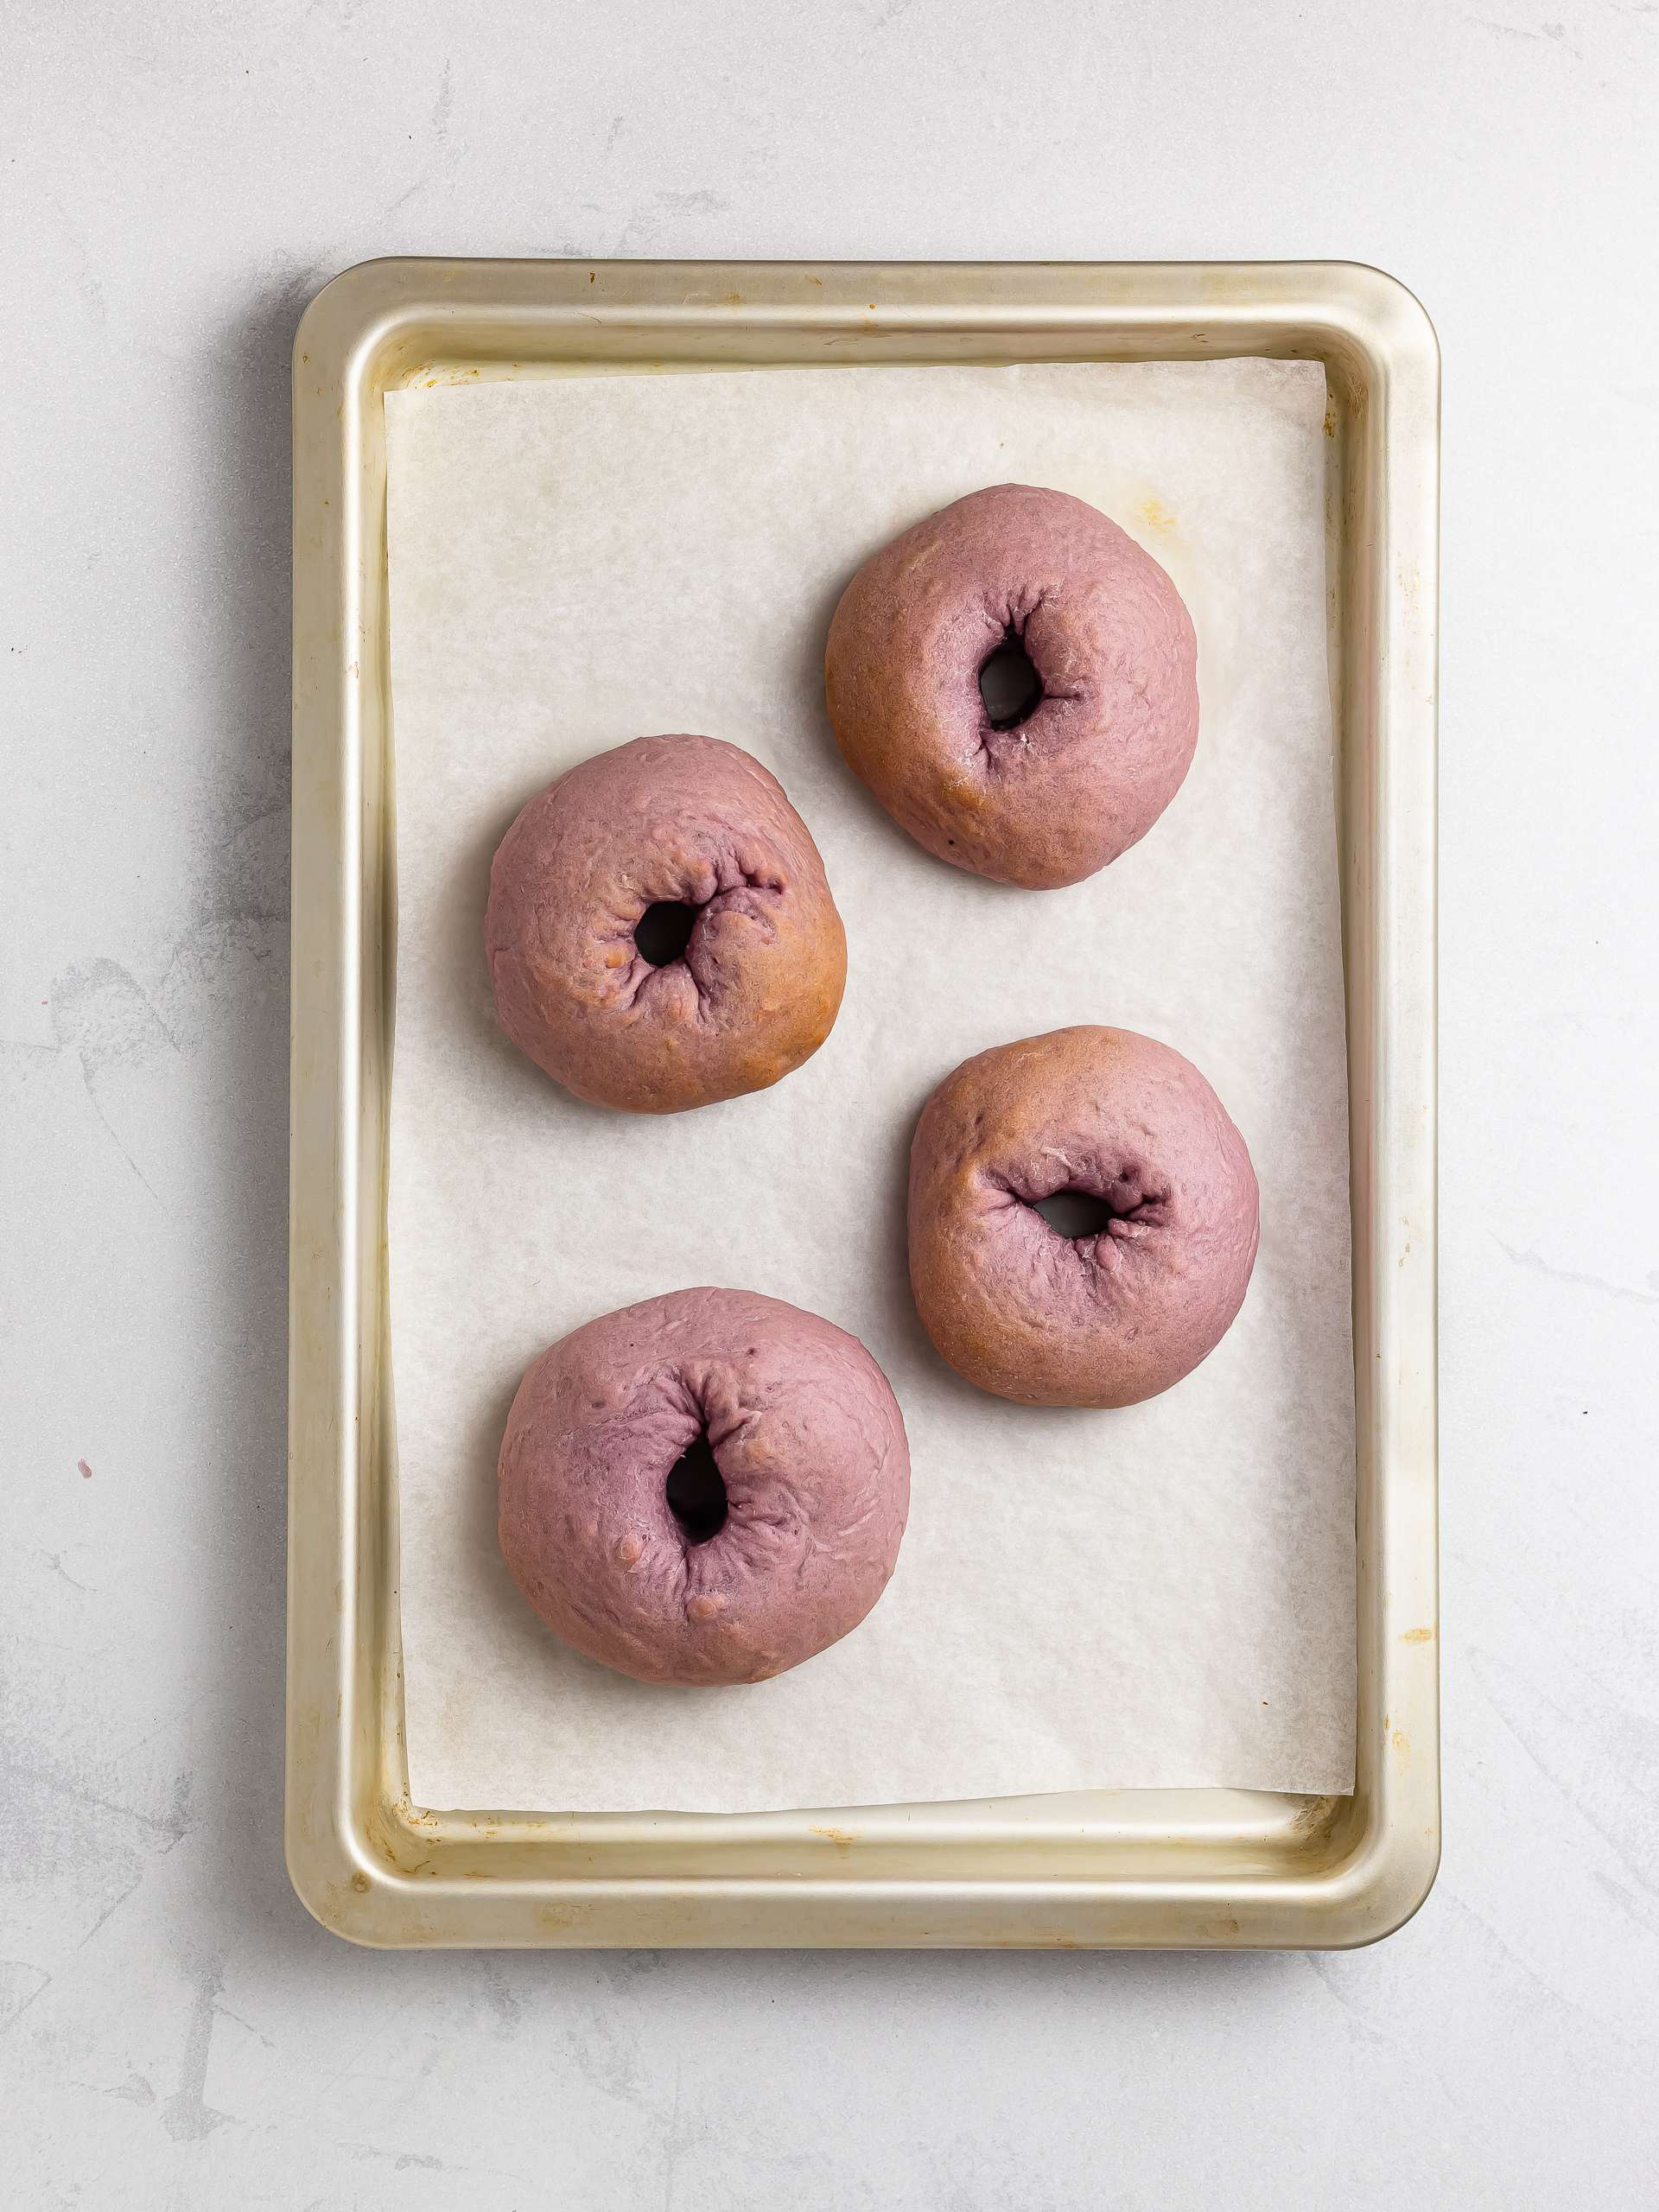 oven baked ube donuts on a tray